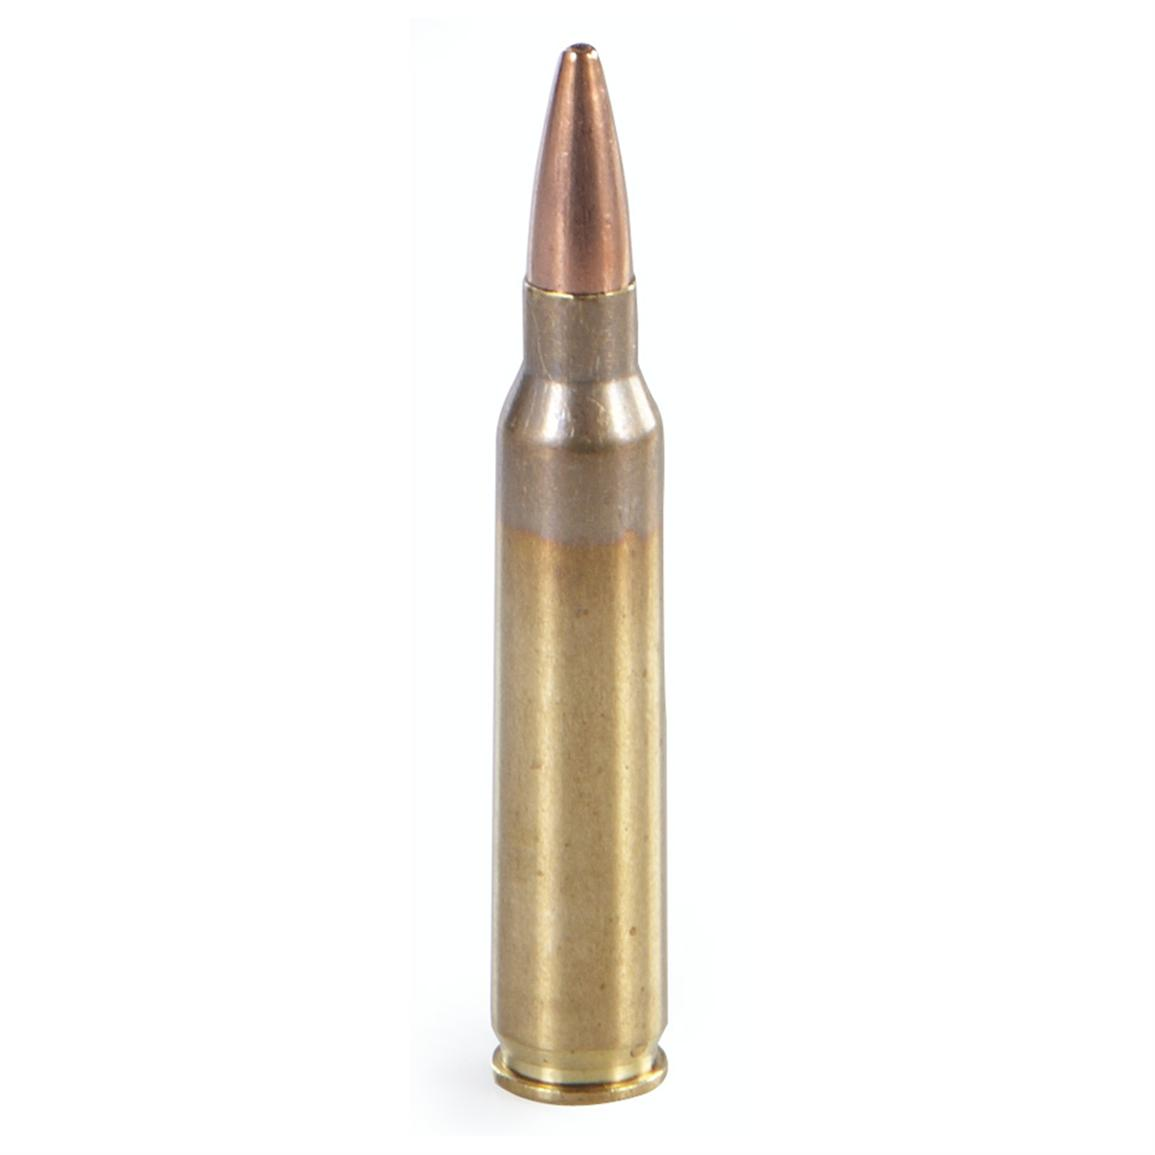 Current-production, non-corrosive, boxer-primed. Reloadable brass case.